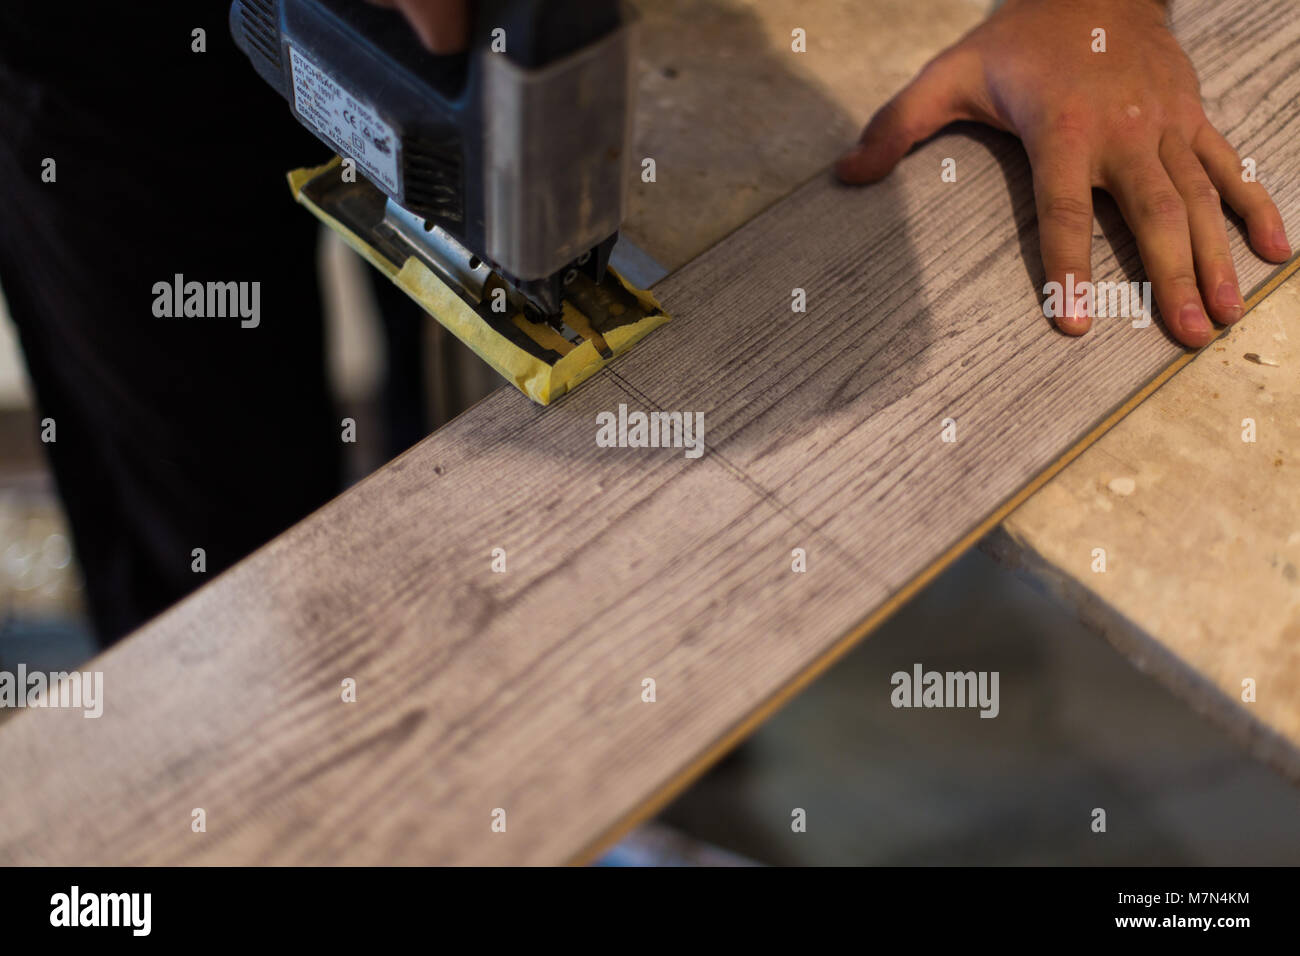 Contractor Cutting laminate flooring lengthwise. Workers Cutlaminate flooring with electric saw. - Stock Image